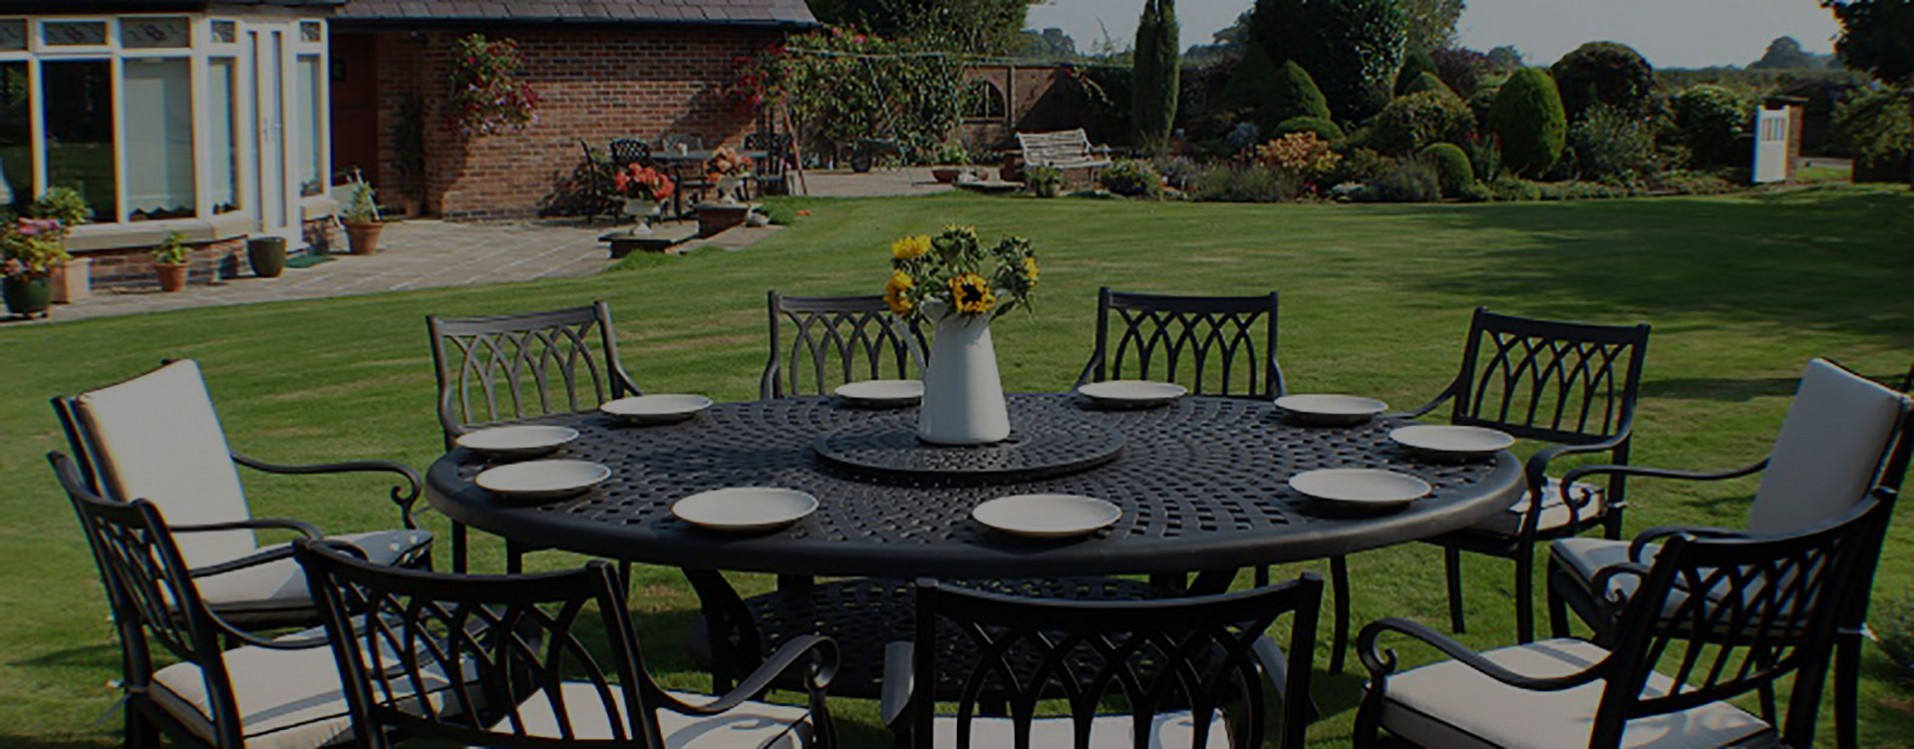 Cast Aluminium Garden Furniture | Free Fast Delivery Throughout Michelle Metal Garden Benches (View 22 of 25)